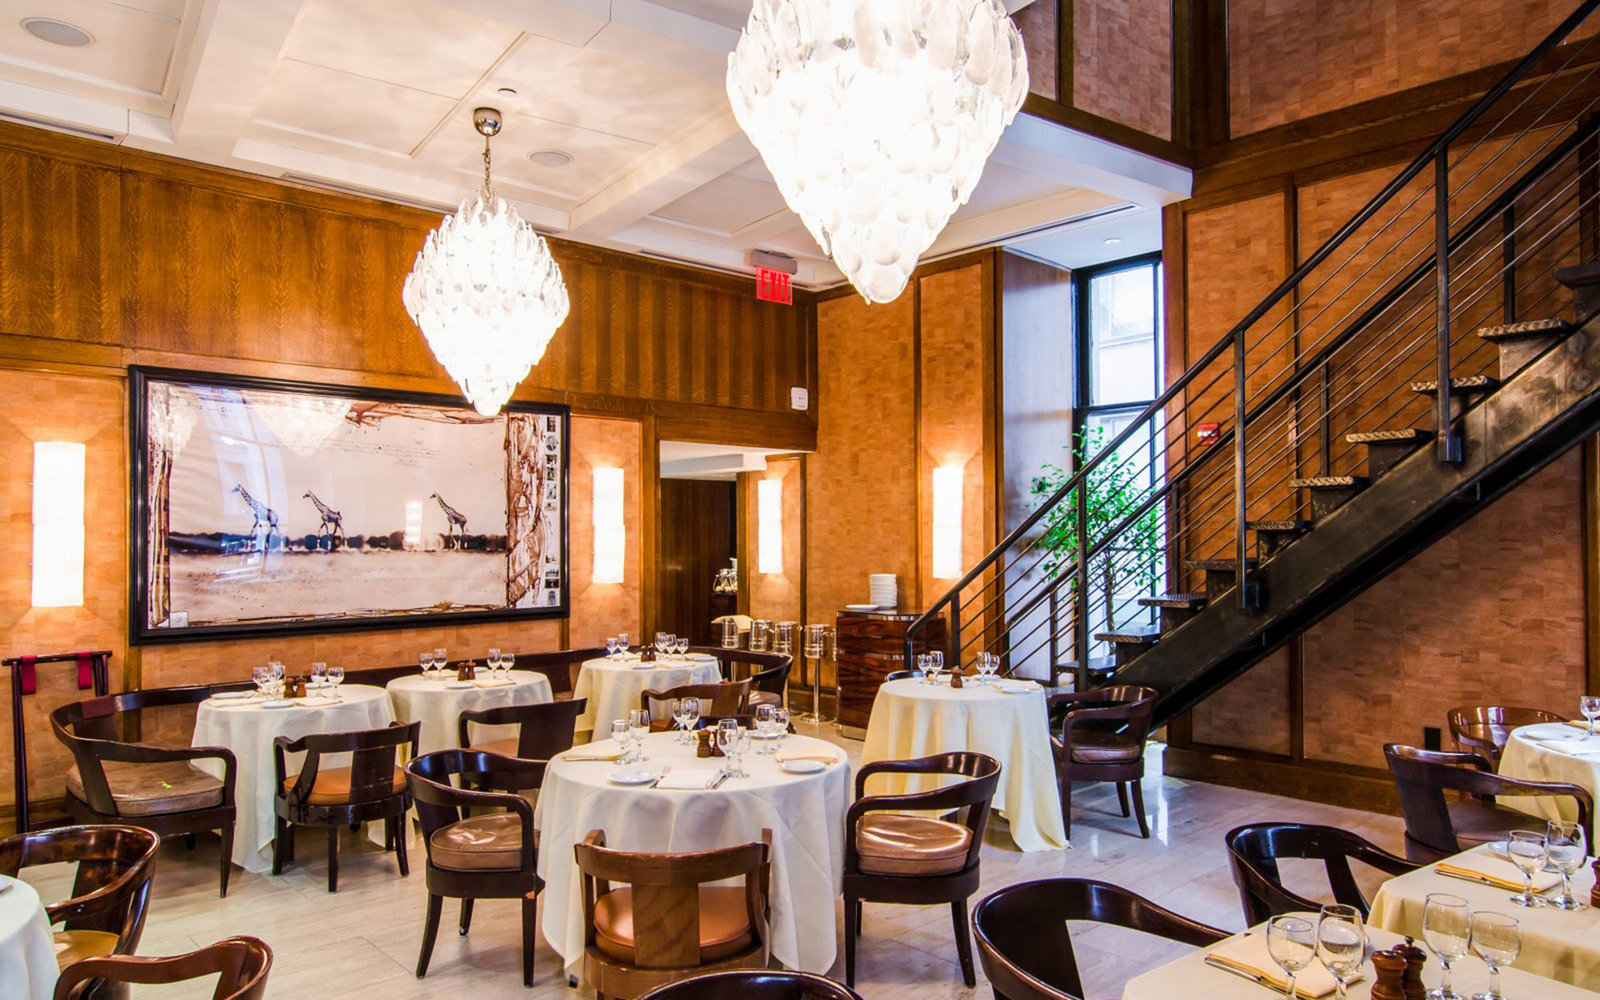 NYC's power lunch restaurants